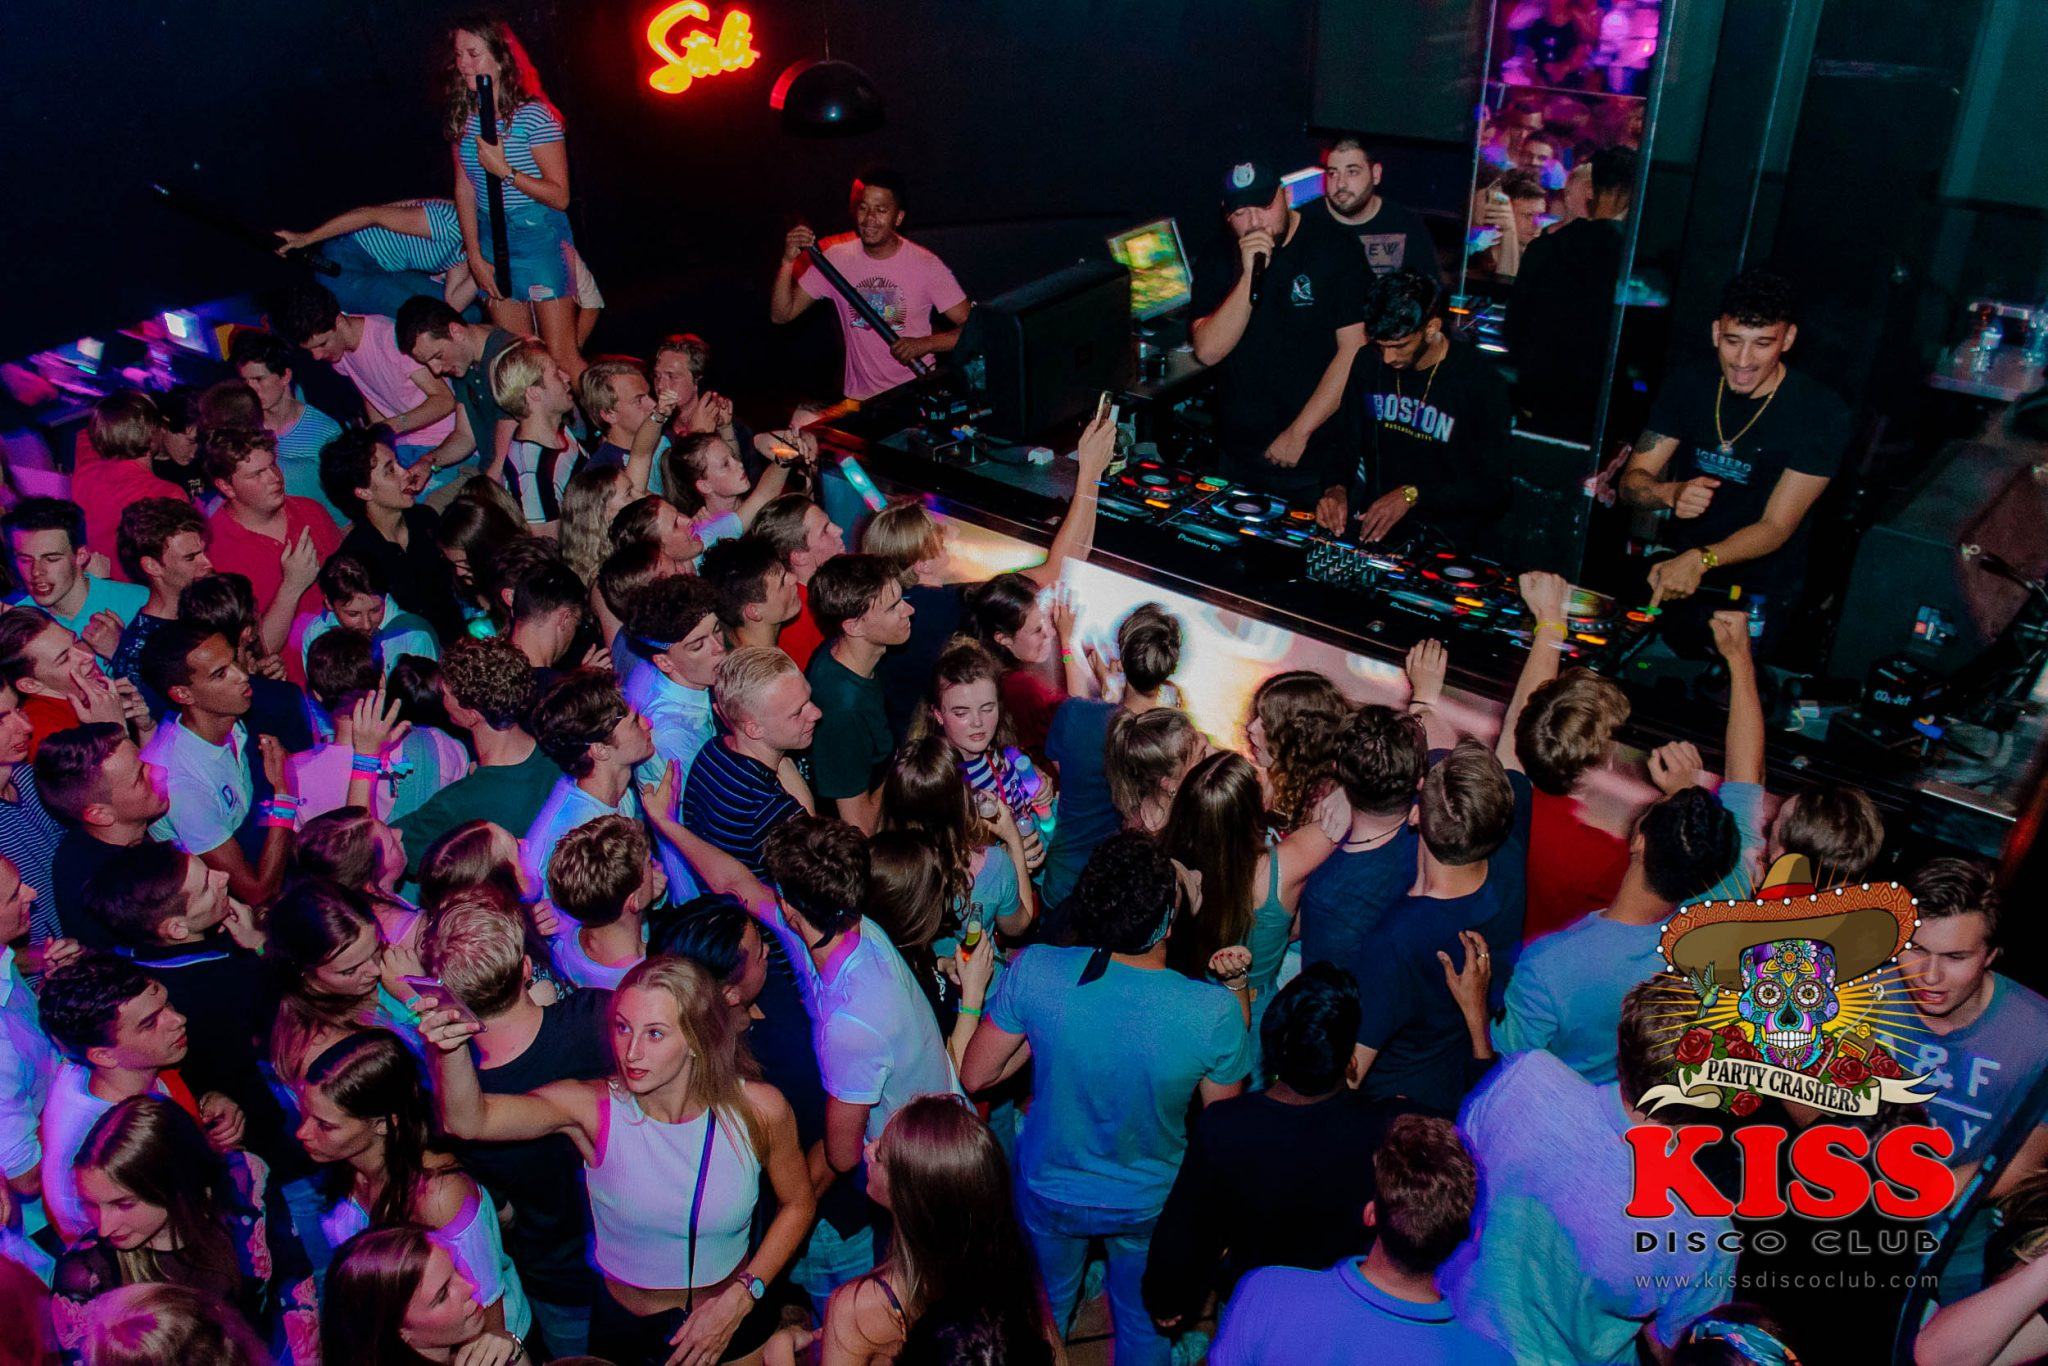 Kiss Club at Oura Strip Albufeira